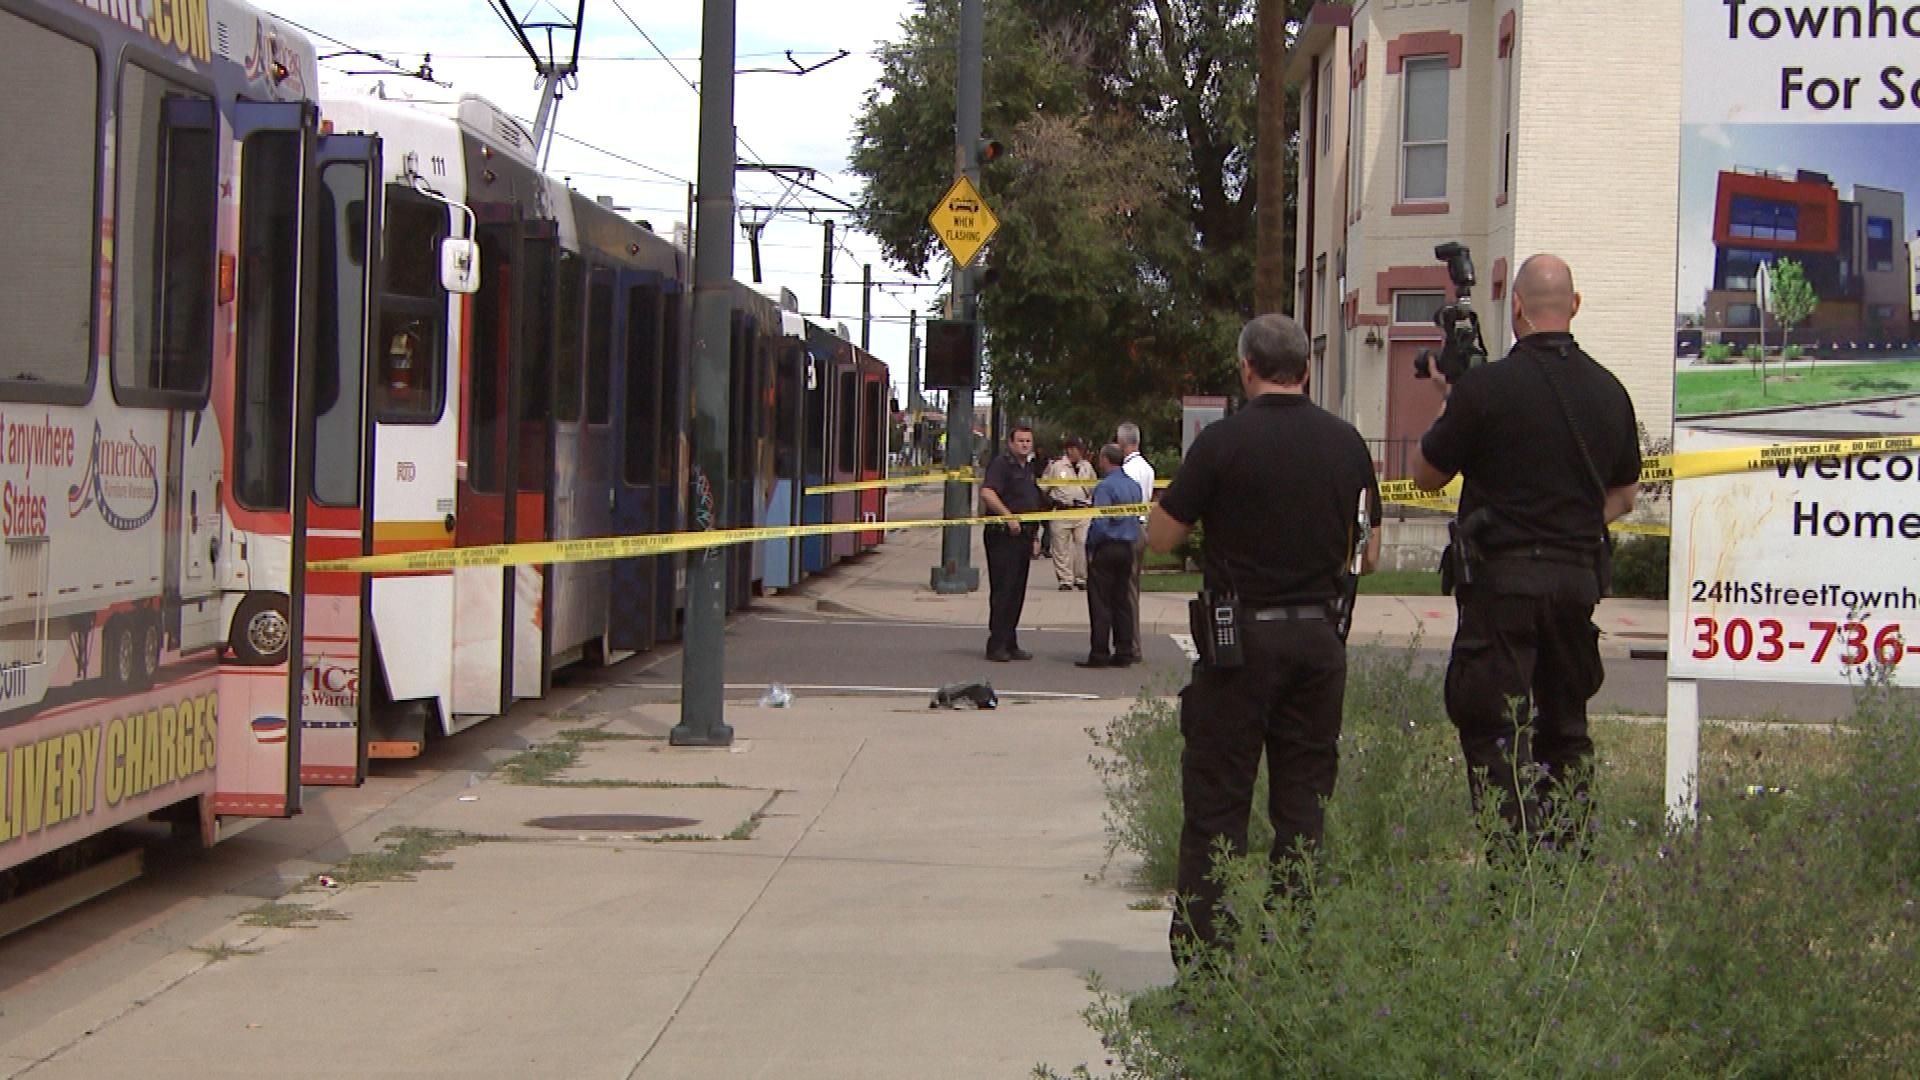 The scene of a light rail accident on 24th and Welton street (credit: CBS)